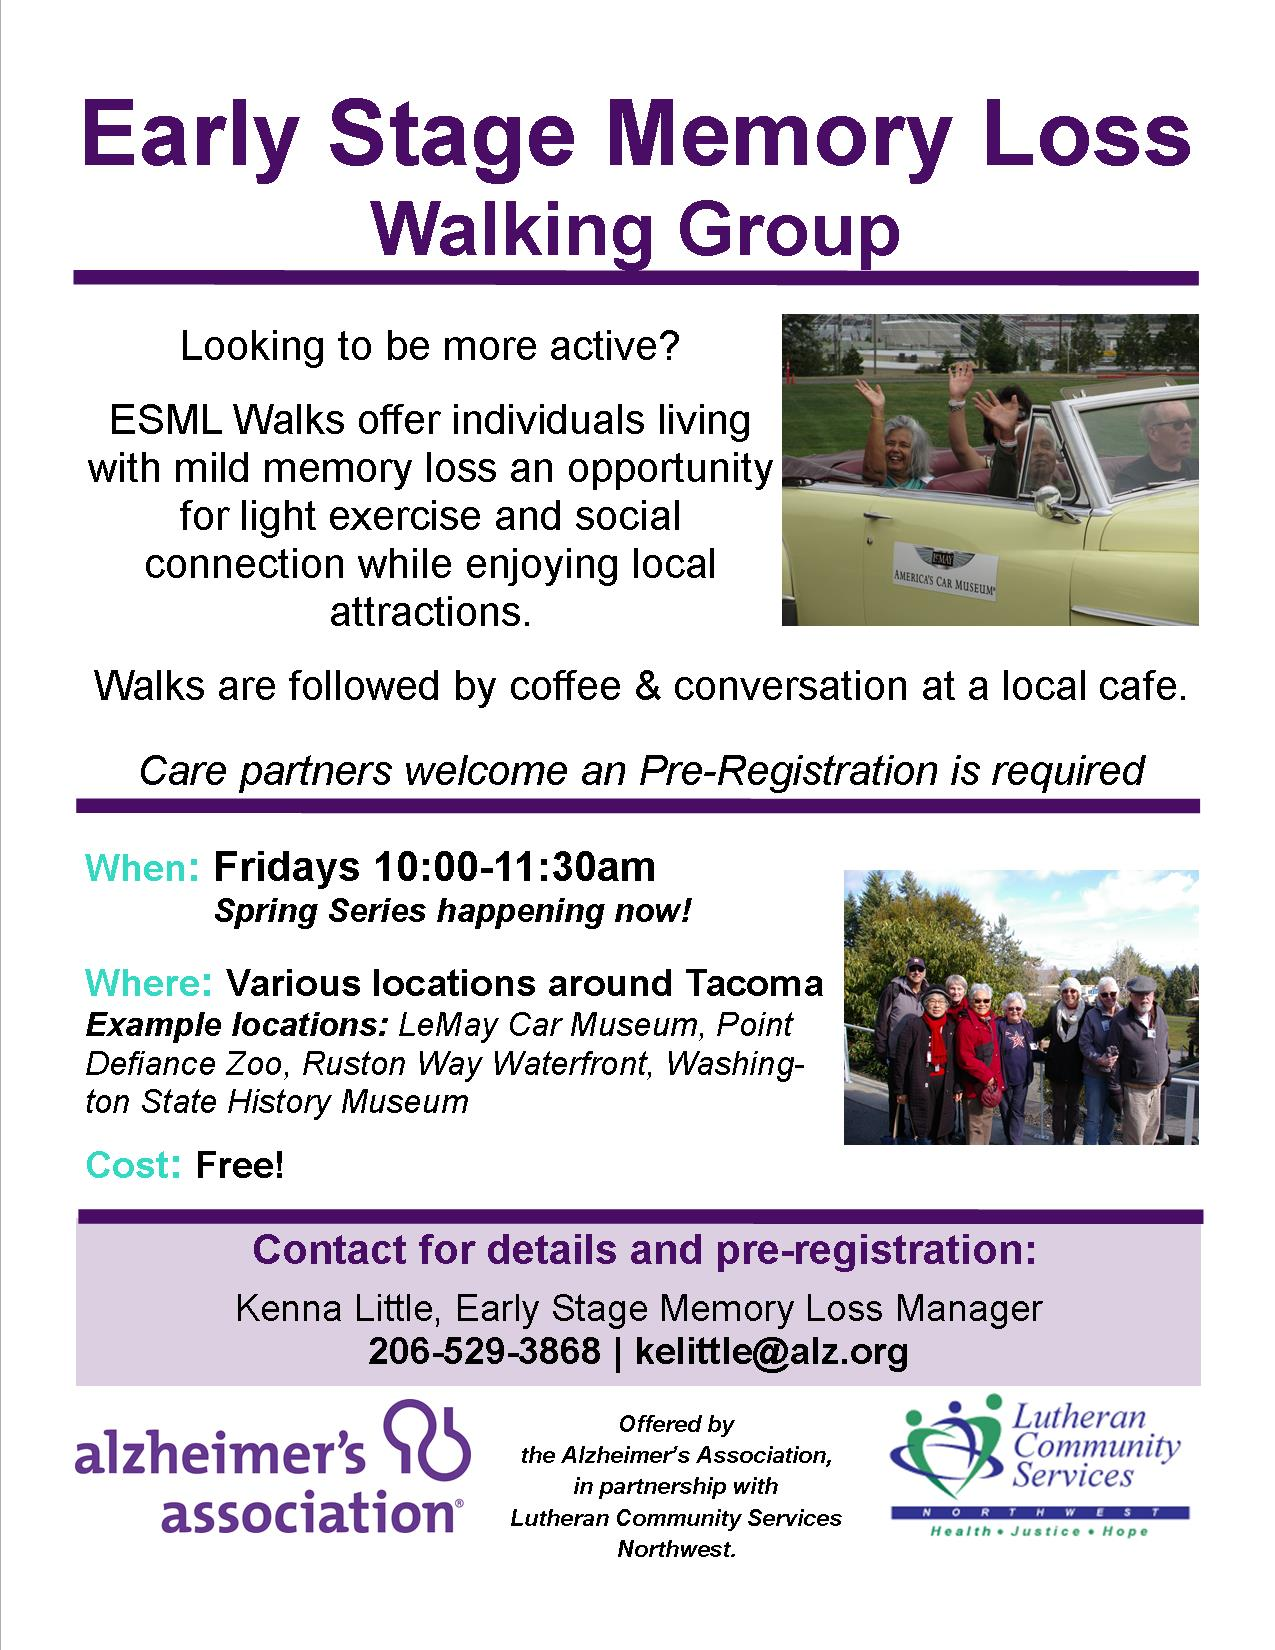 ESML Tac Walk Flyer.jpg